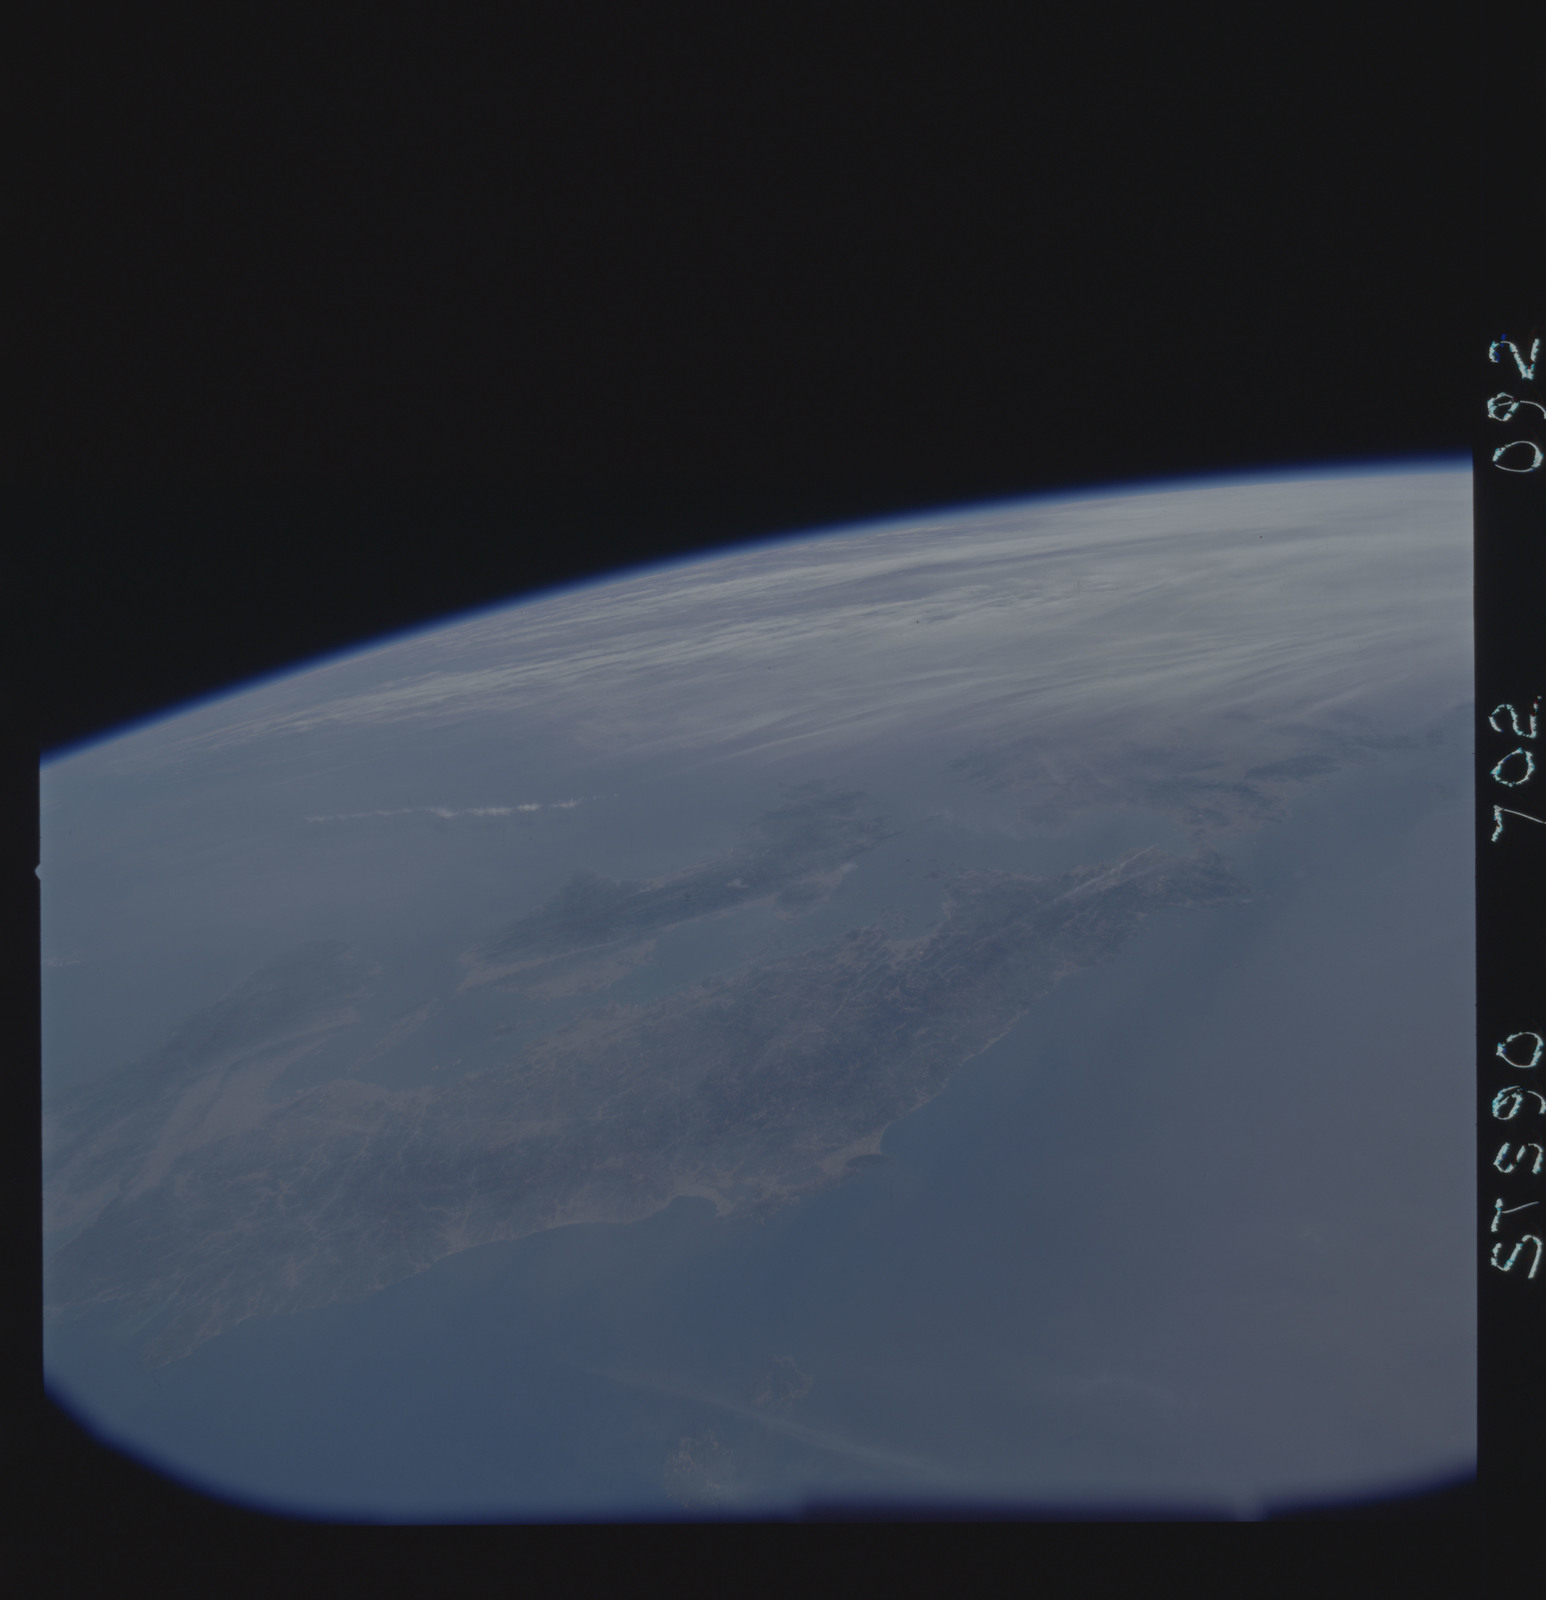 STS090-702-092 - STS-090 - Earth observations taken during STS-90 mission